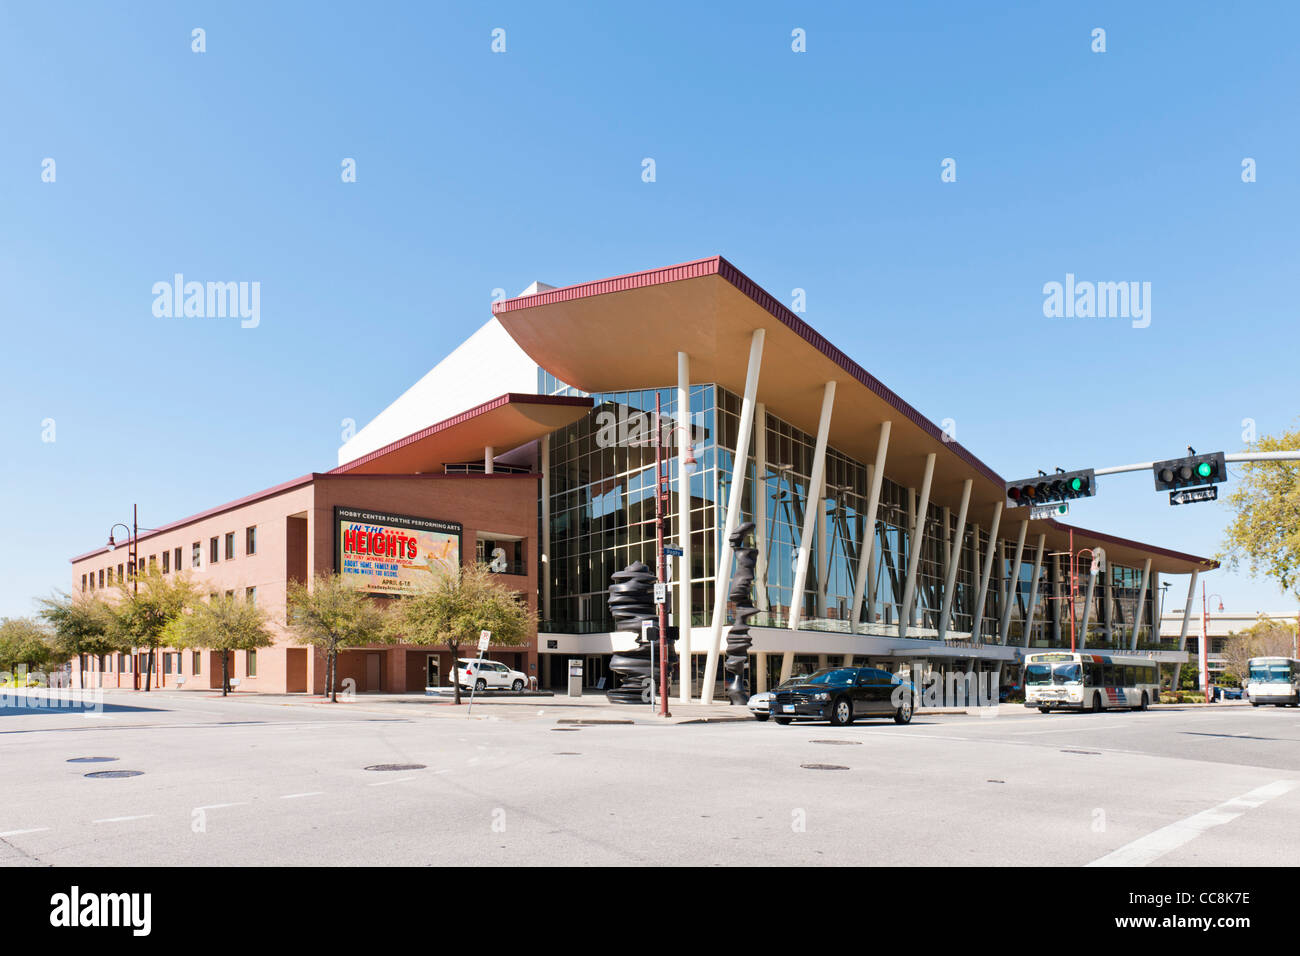 Hobby Performing Arts Center, Houston, Texas - Stock Image